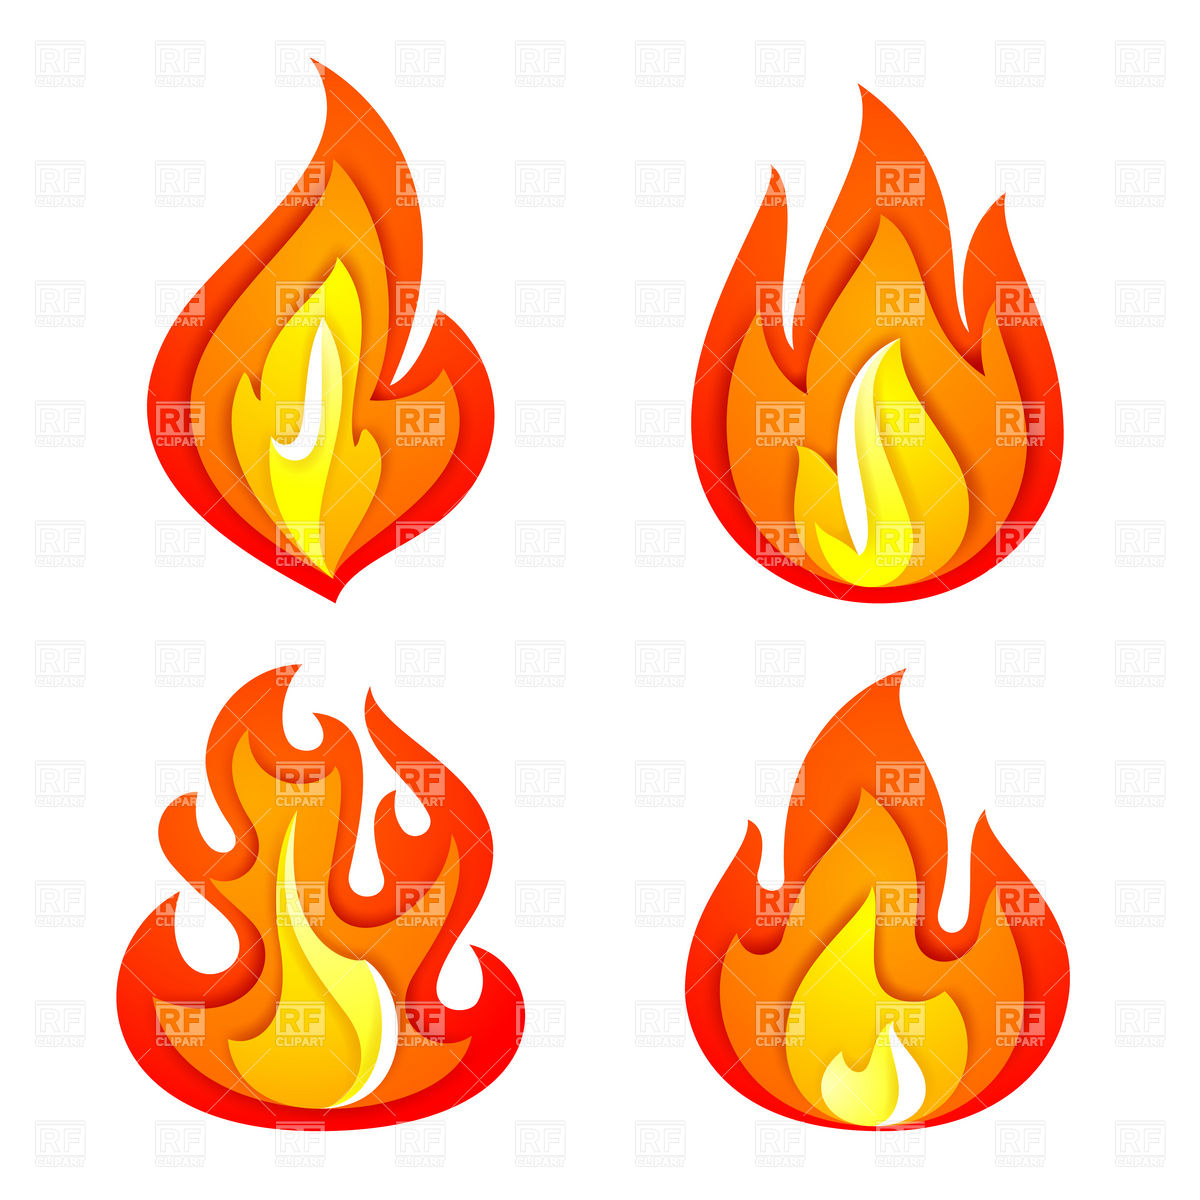 Clip Art Flame Clip Art flames flame cli-Clip Art Flame Clip Art flames flame clip art vector graphics image 4 famclipart 3-12